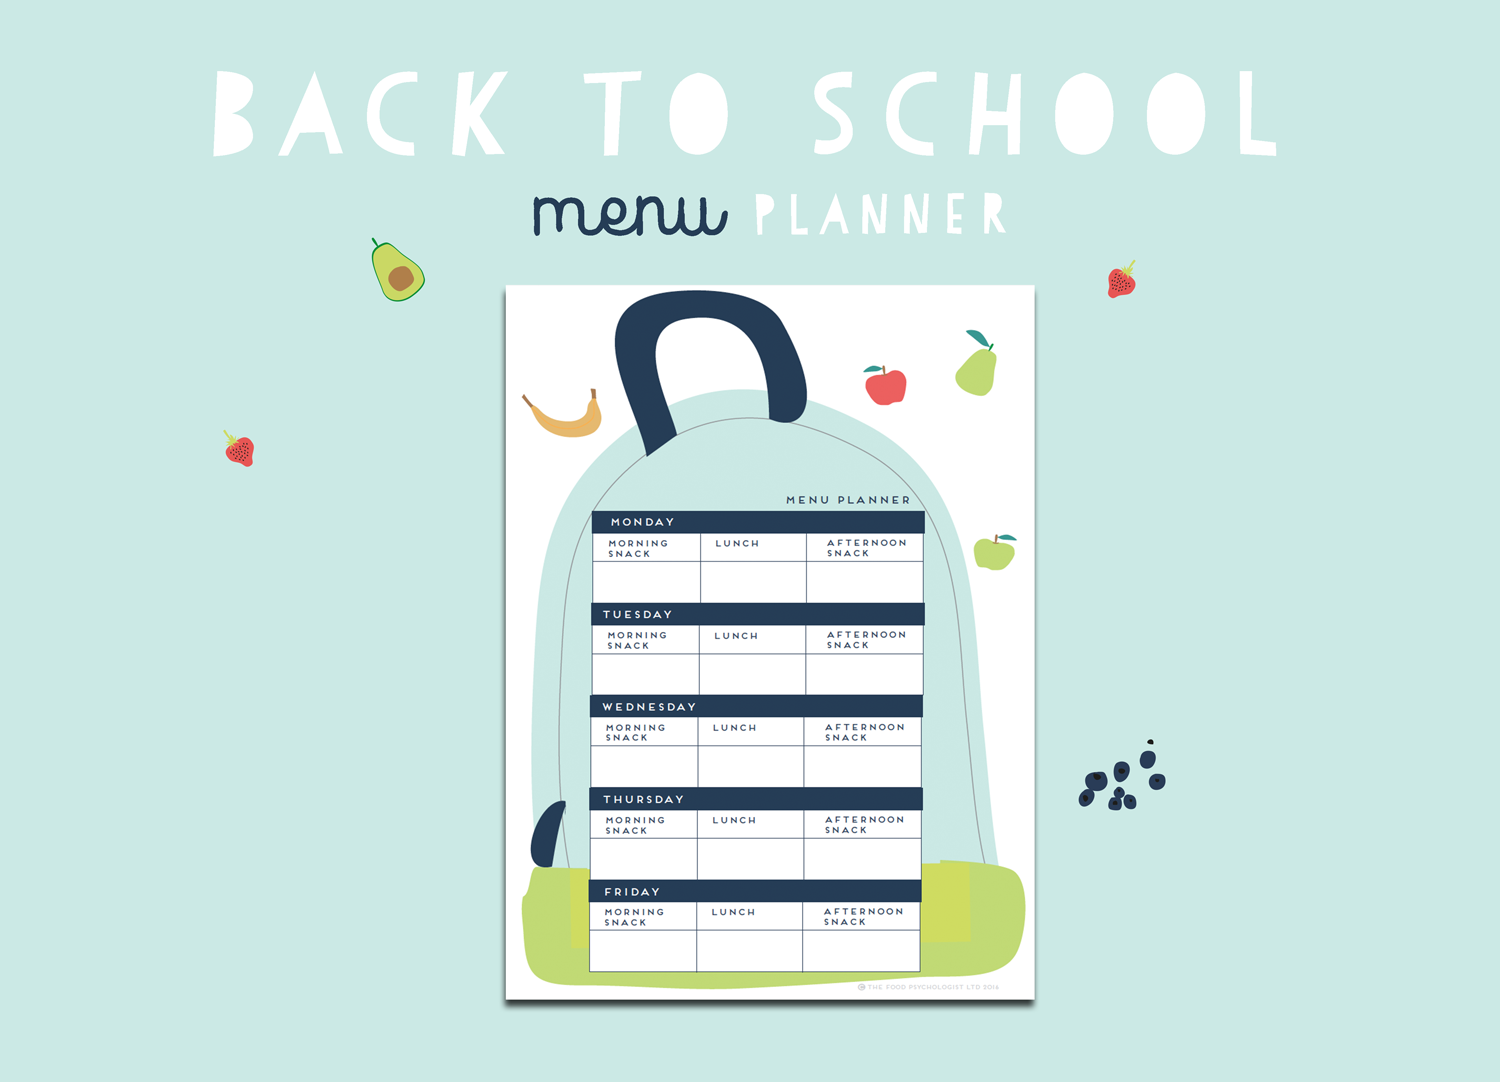 Back To School Menu Planner